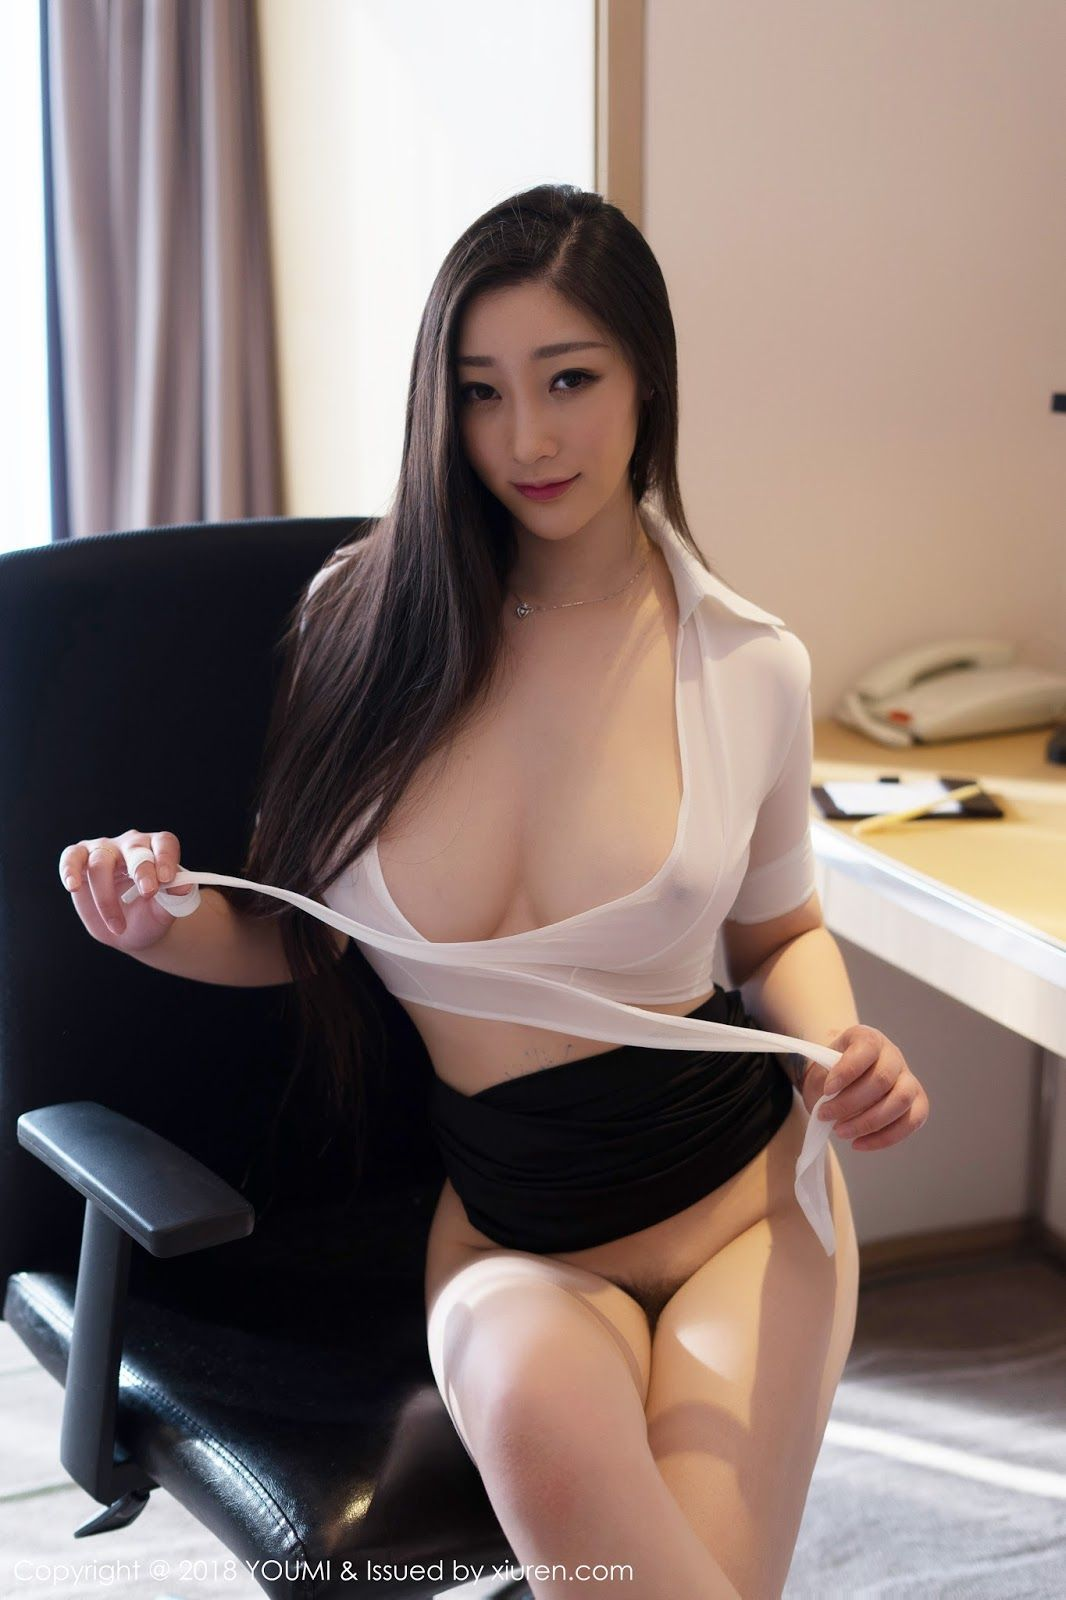 3d34998c3b70642237d9864c136b4a79 Top Chinese Brides Guide!